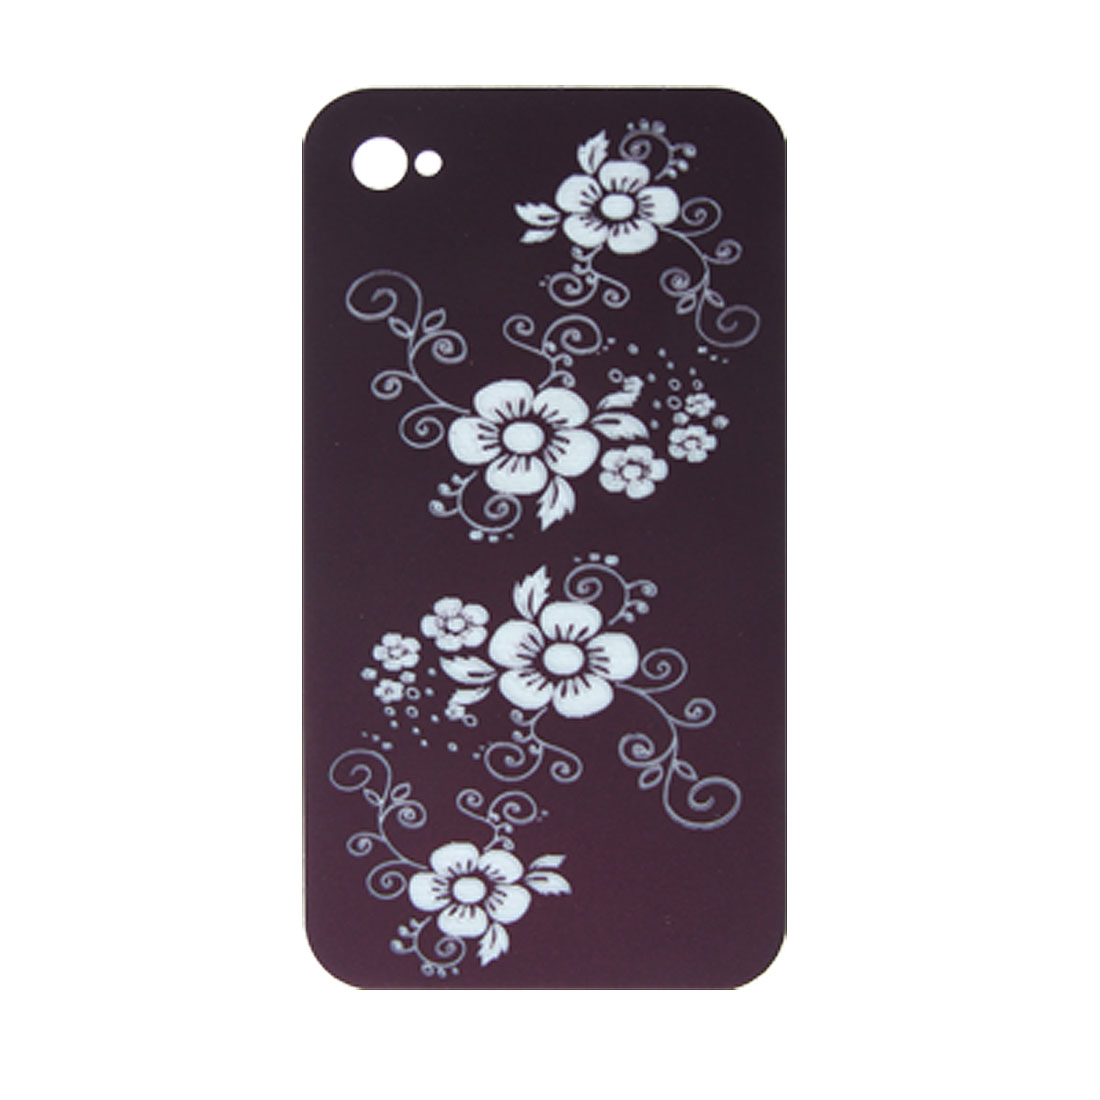 Plum Blossom Print Hard Plastic Case Cover for iPhone 4 4G